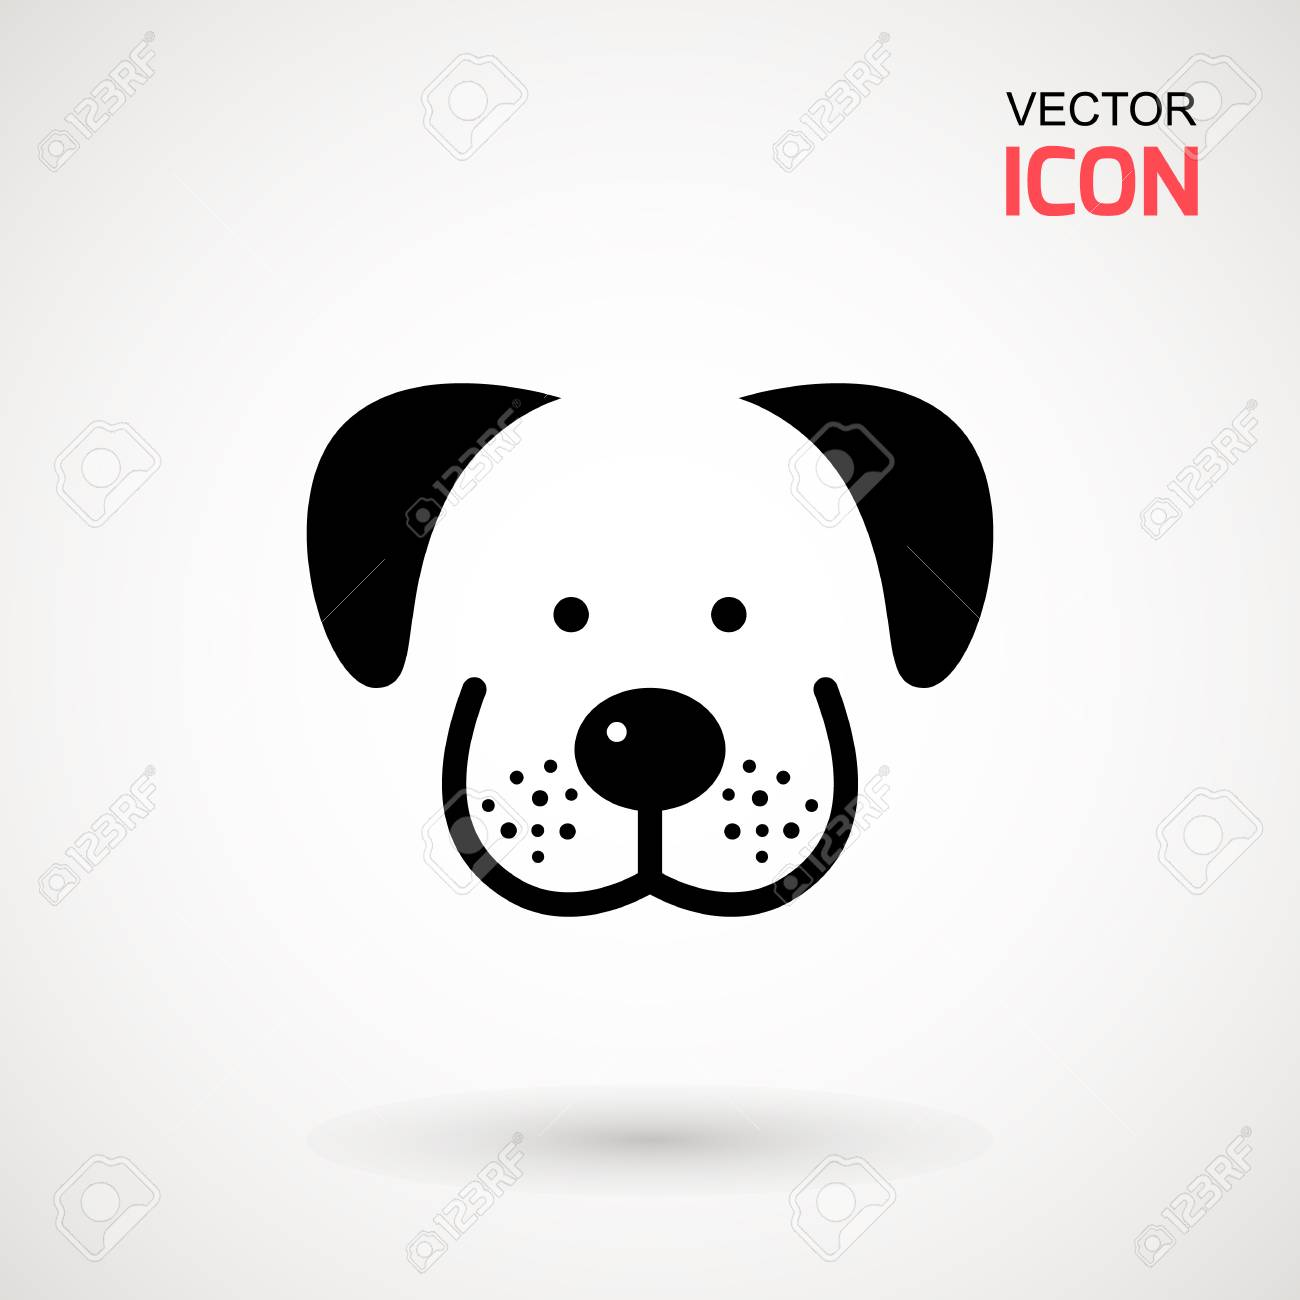 Dog Head Icon Flat Style Cartoon Dog Face Vector Illustration Royalty Free Cliparts Vectors And Stock Illustration Image 104393509